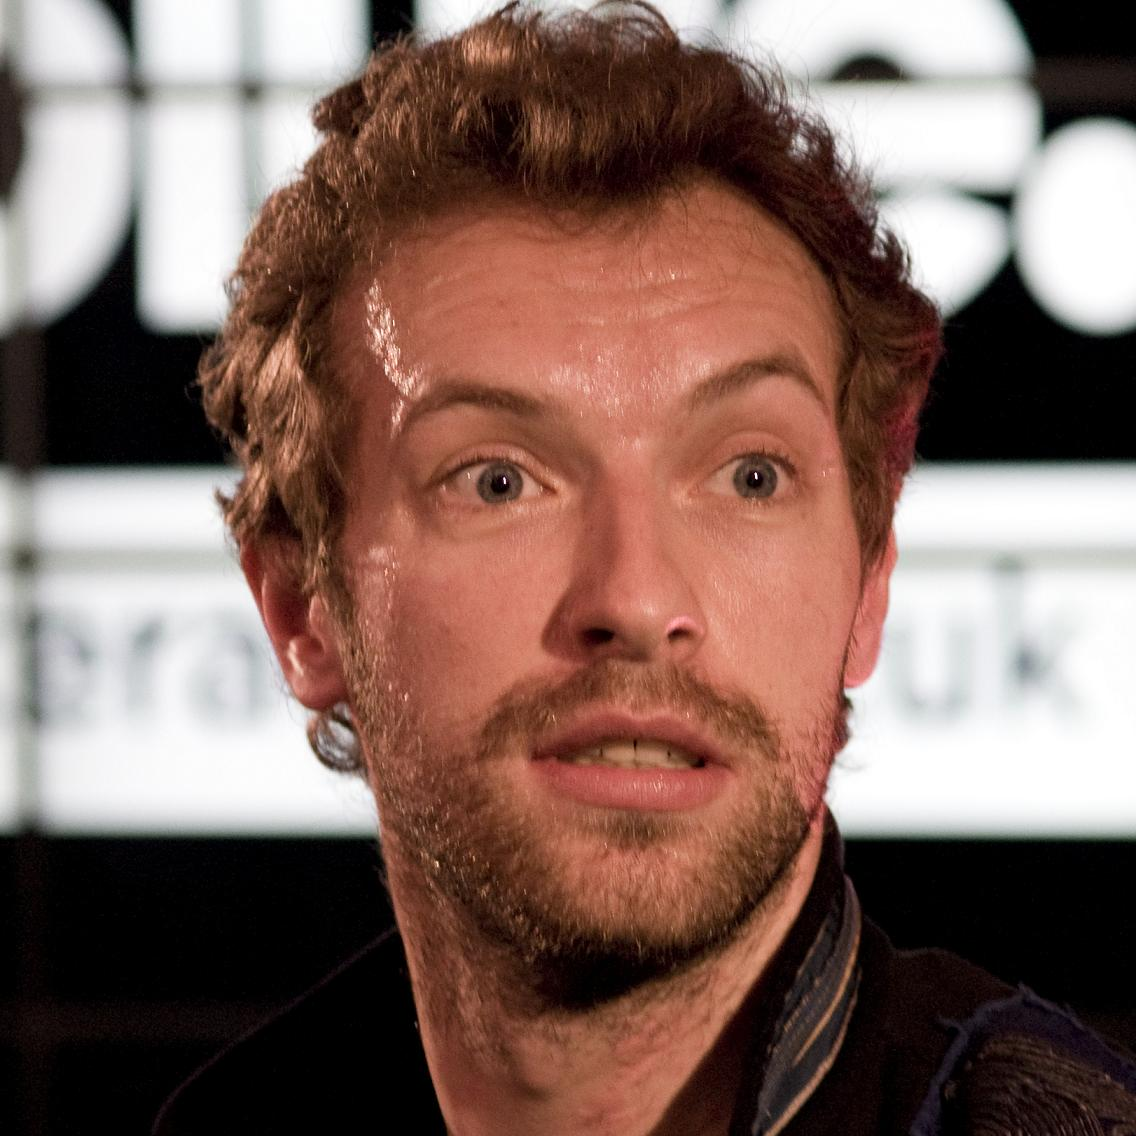 Chris Martin Bio, Net Worth, Facts